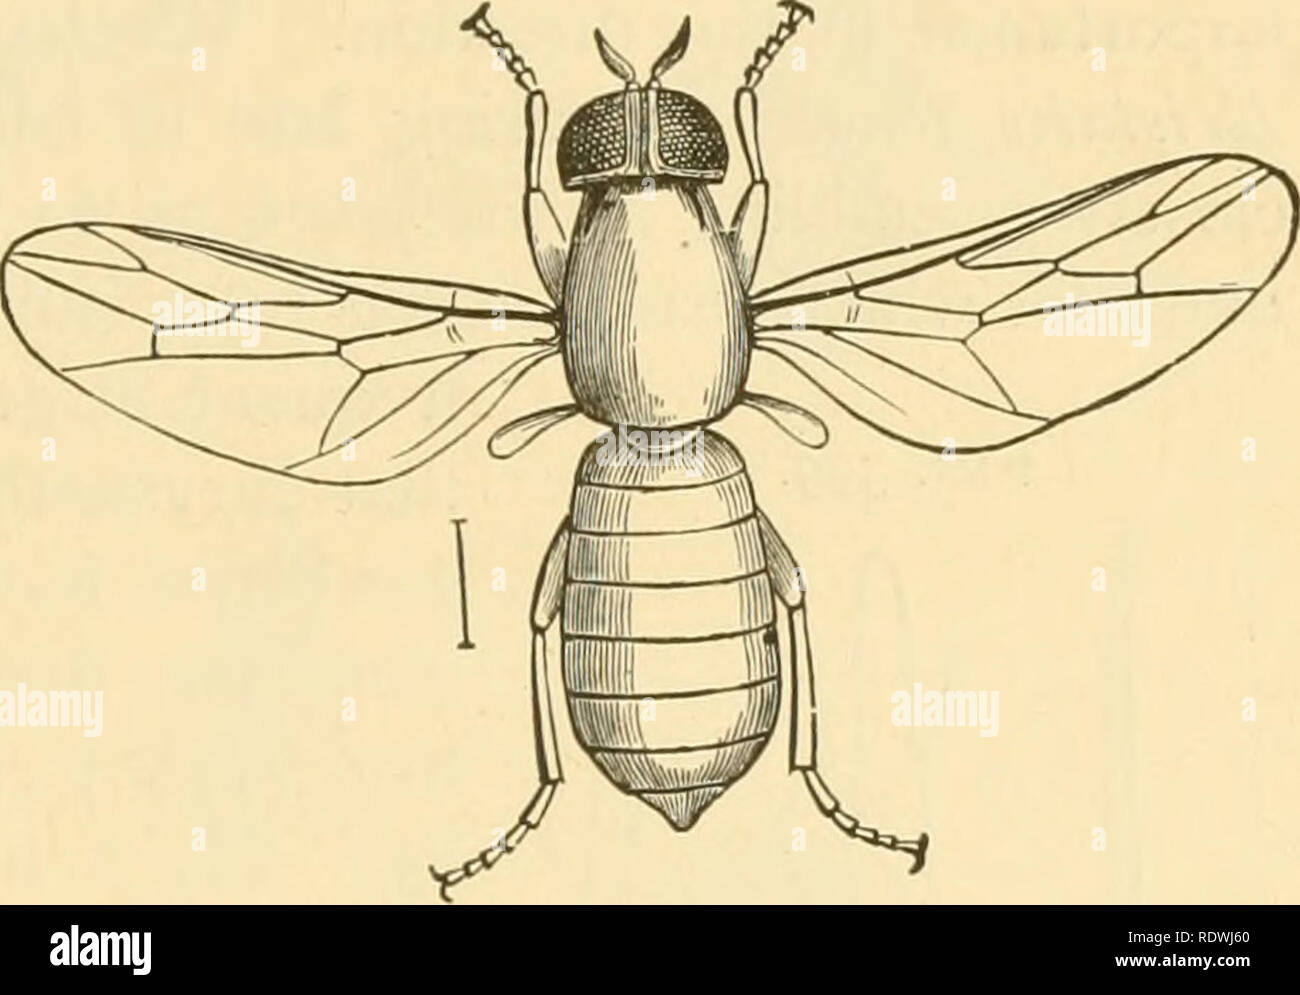 """. Economic entomology for the farmer and fruit-grower. Beneficial insects. THE INSECT WORLD. 347. Scenopinus fenestralis. of fact it is predaceous in habit, and feeds upon the species really infesting carpets and similar material. Thus, """"moths,"""" the larvae of the '' carpet-beetle,"""" """" fish-moths,'' and numerous other insects likely to occur in such situa- ^^^- 397- tions are destroyed by it. From this larva there comes in due time a small blue fly, a member of the family Scenopinida, slender and somewhat flattened in appearance, with yel- low or reddish legs, and this may be - Stock Image"""